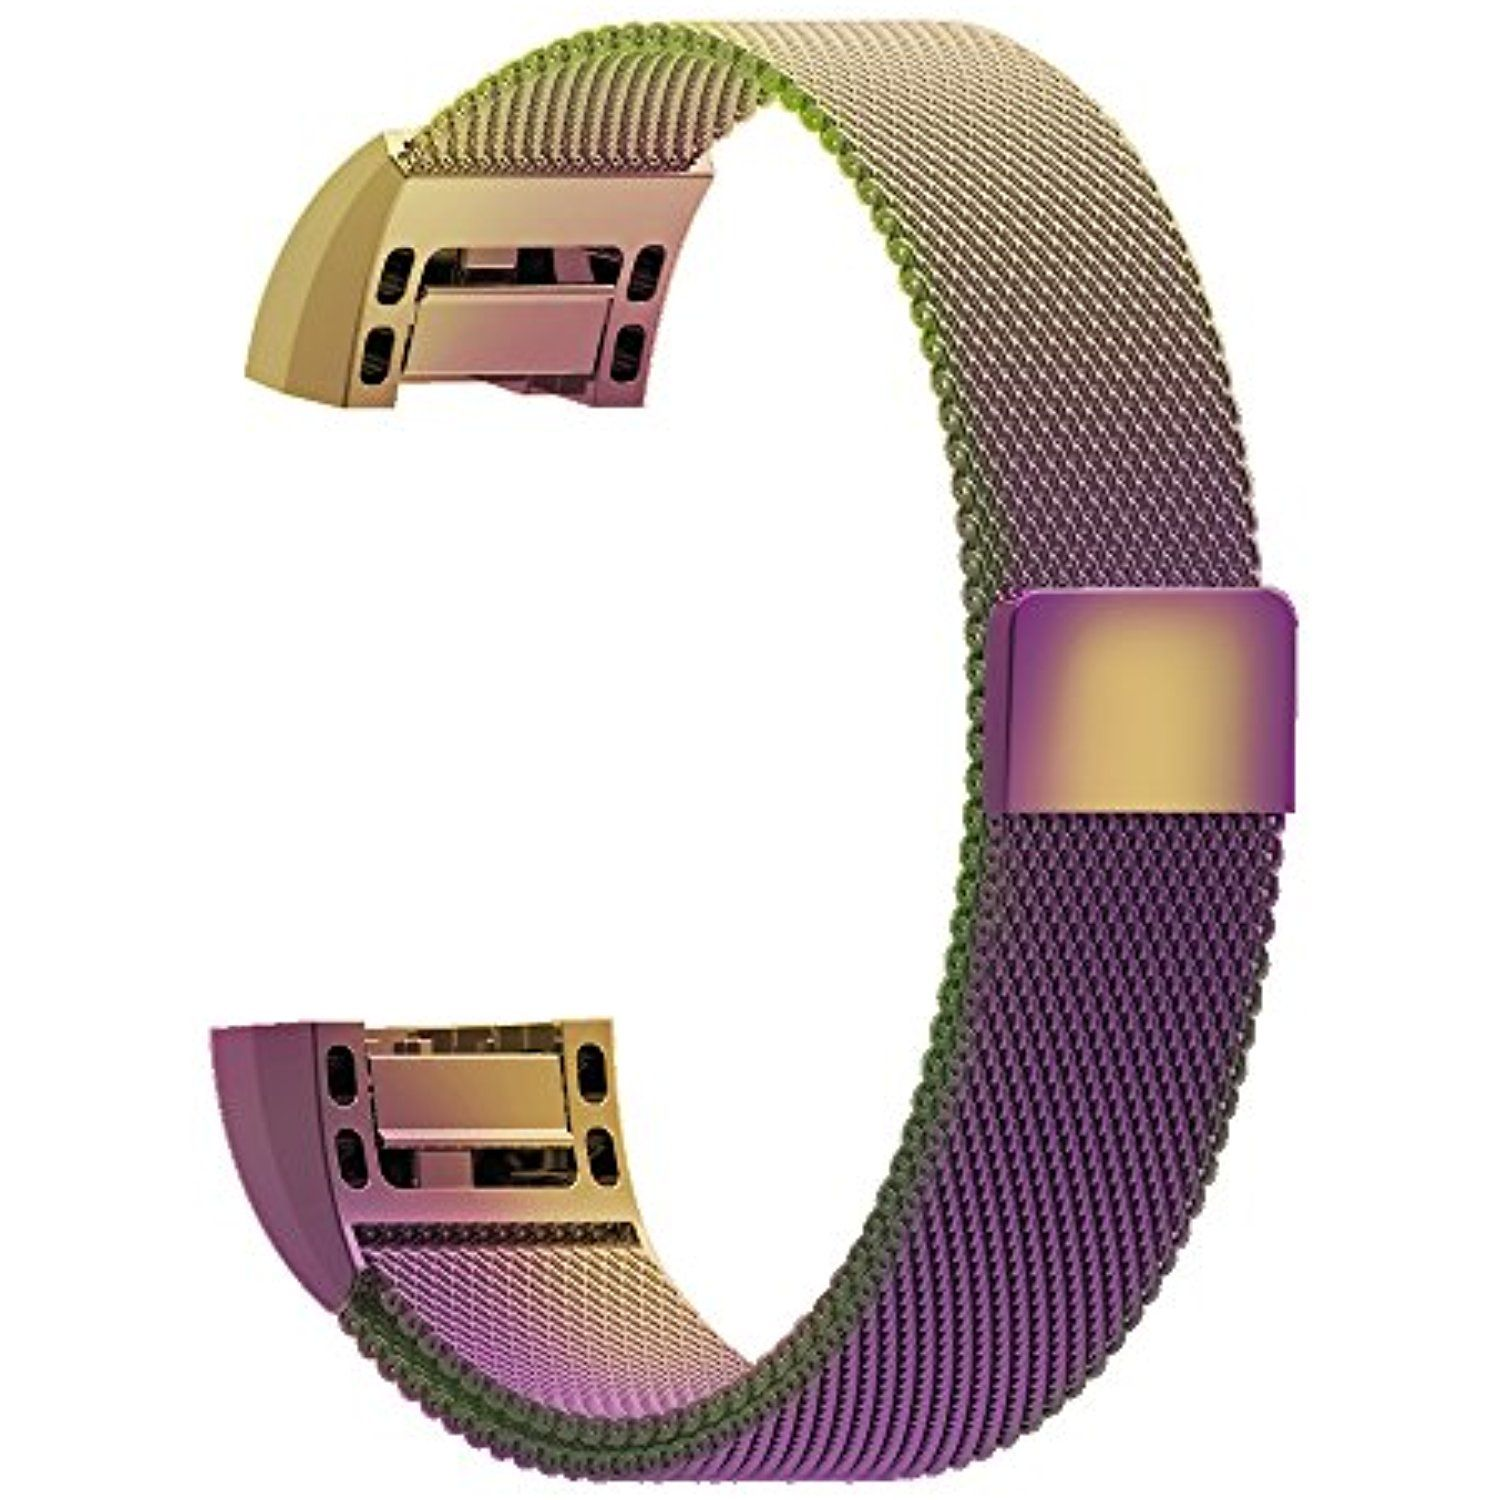 Milanese Loop Band for Fitbit Charge 2- Small- Rainbow